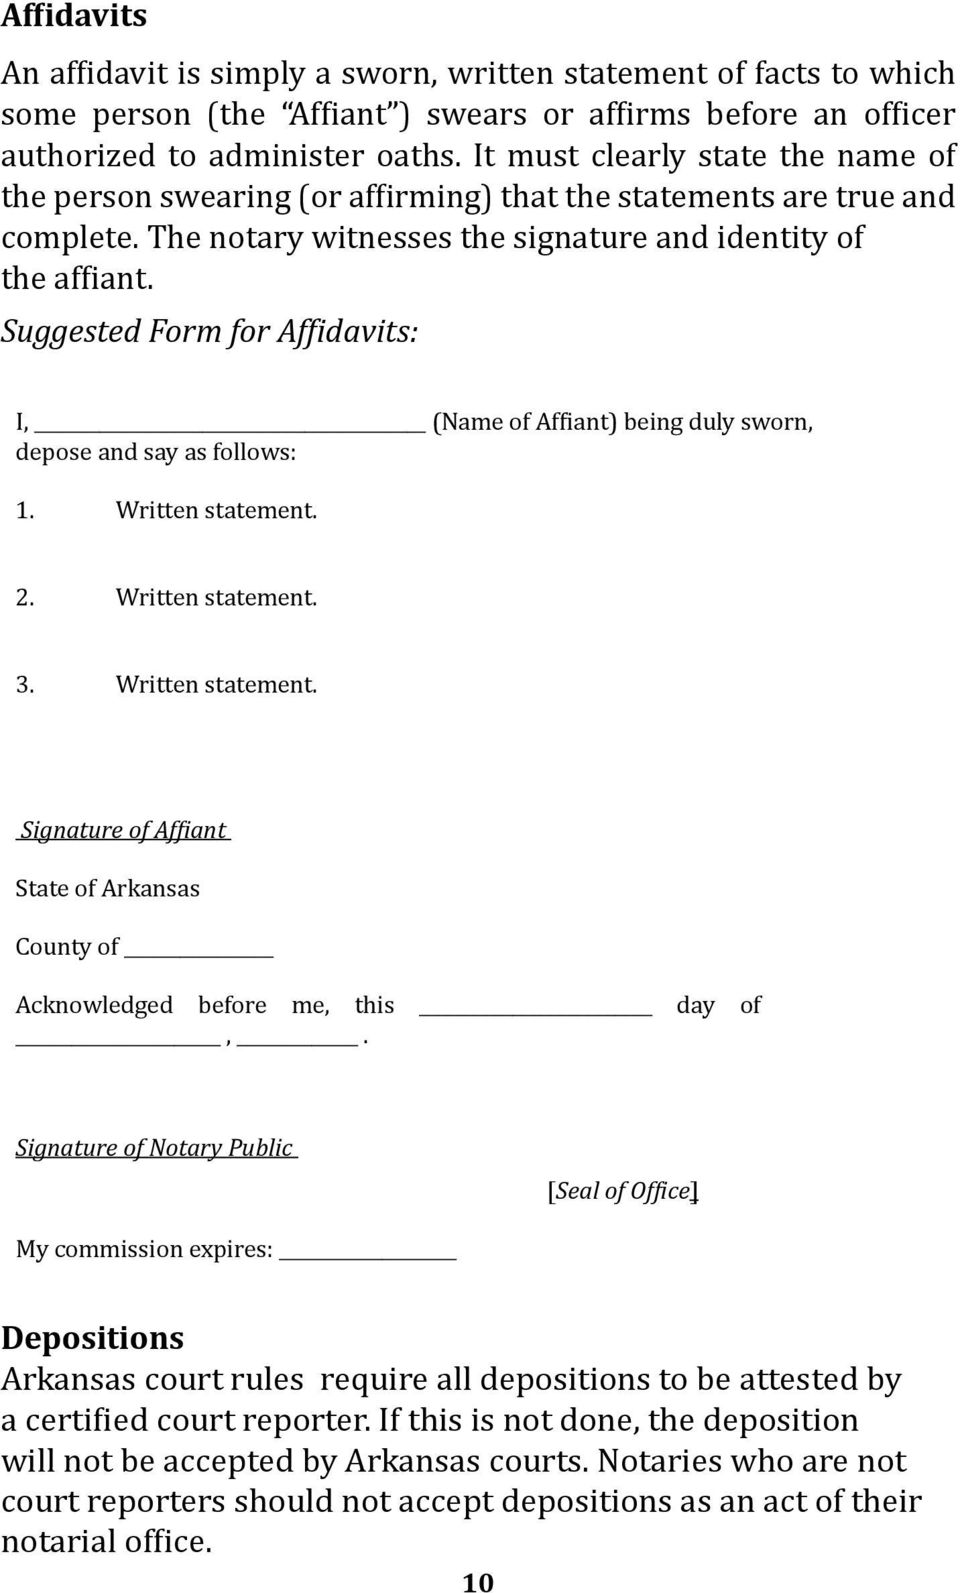 Suggested Form for Affidavits: I, (Name of Affiant) being duly sworn, depose and say as follows: 1. Written statement.